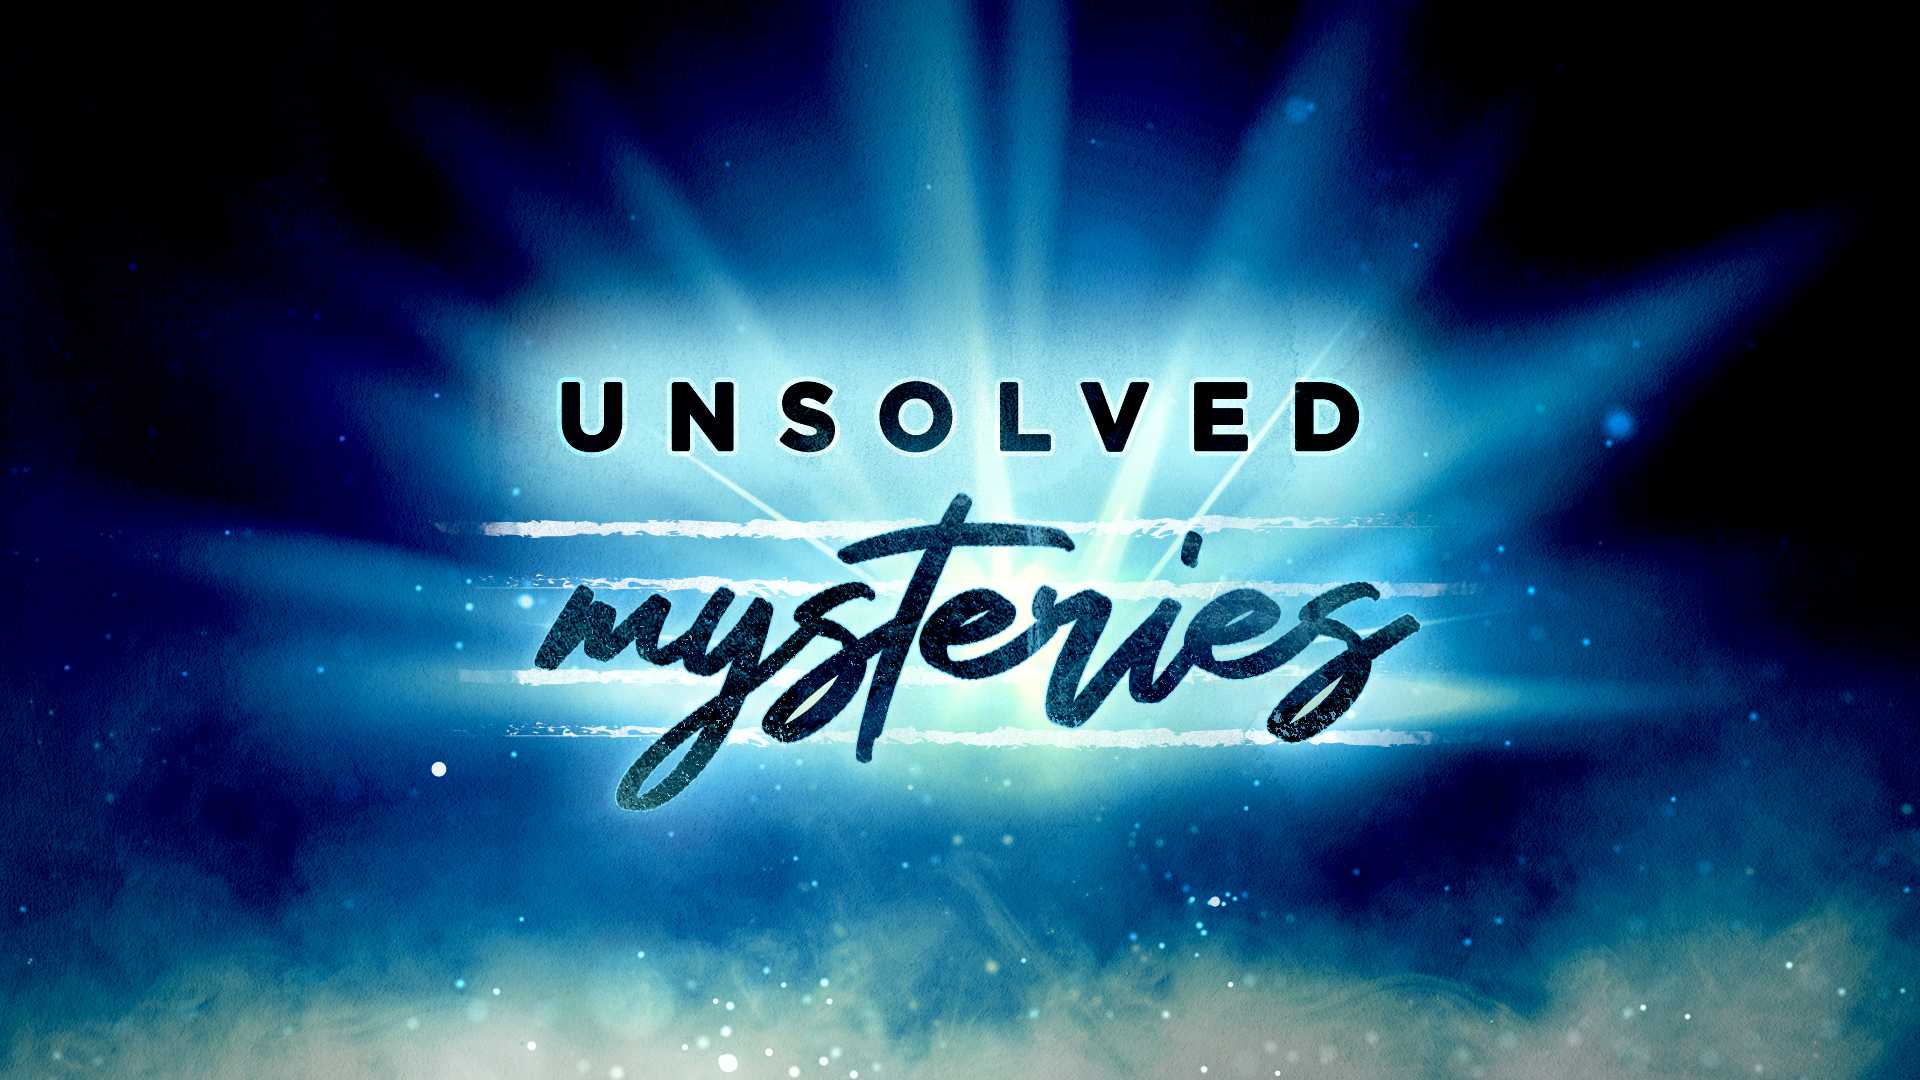 Unsolved Mysteries is currently in its second series